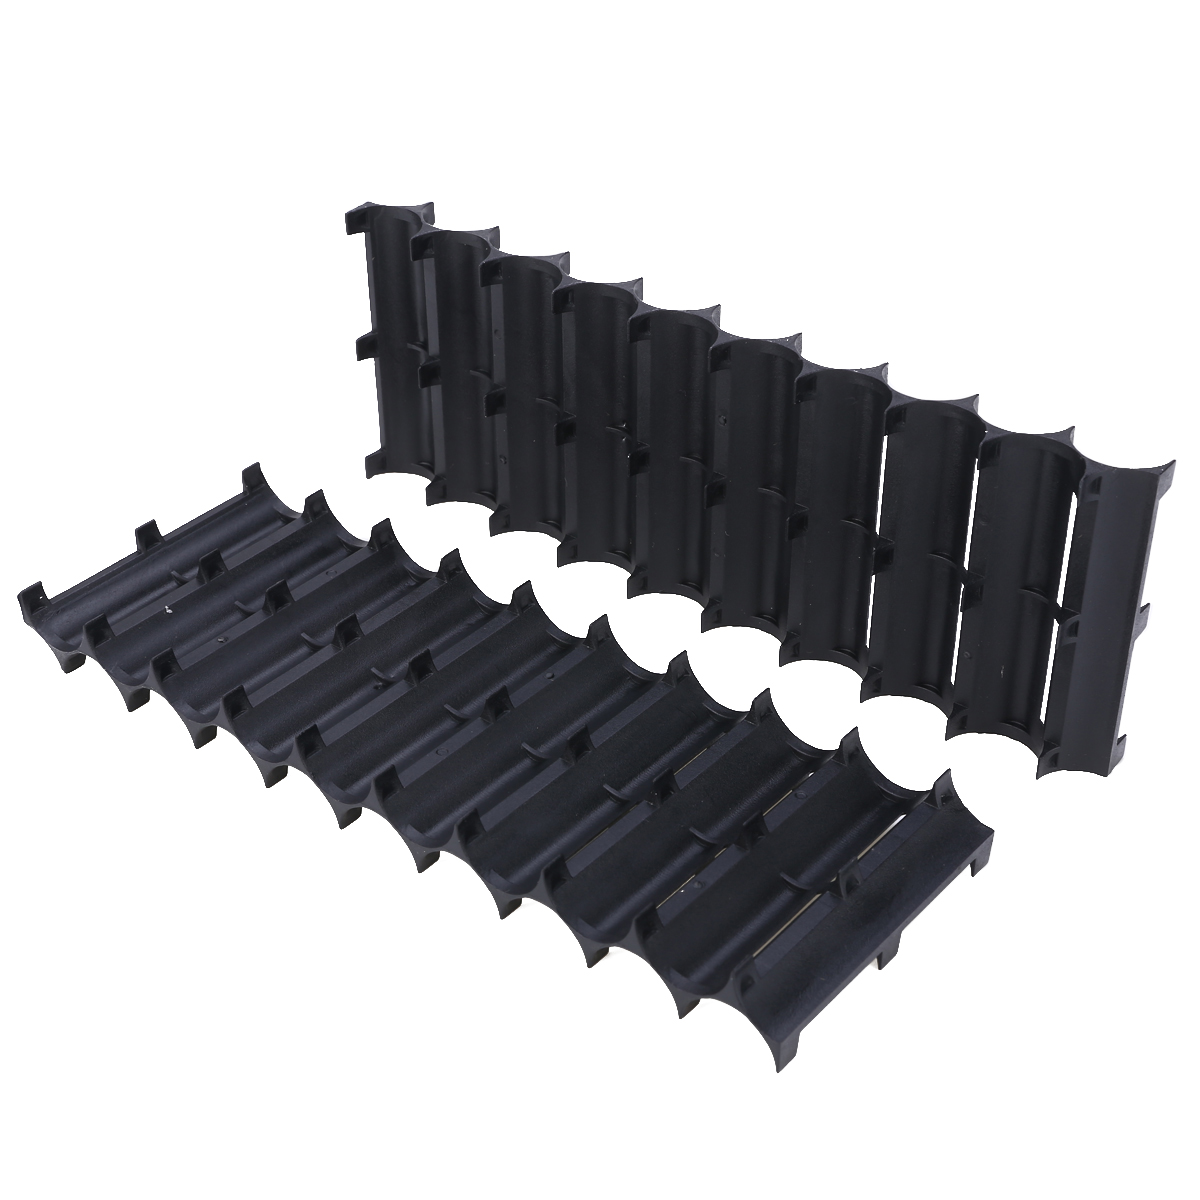 Newest 2pcs Black 10x Cell Plastic 18650 Battery Spacer Holder Cylindrical Cell Bracket For 18650 Battery Accessories